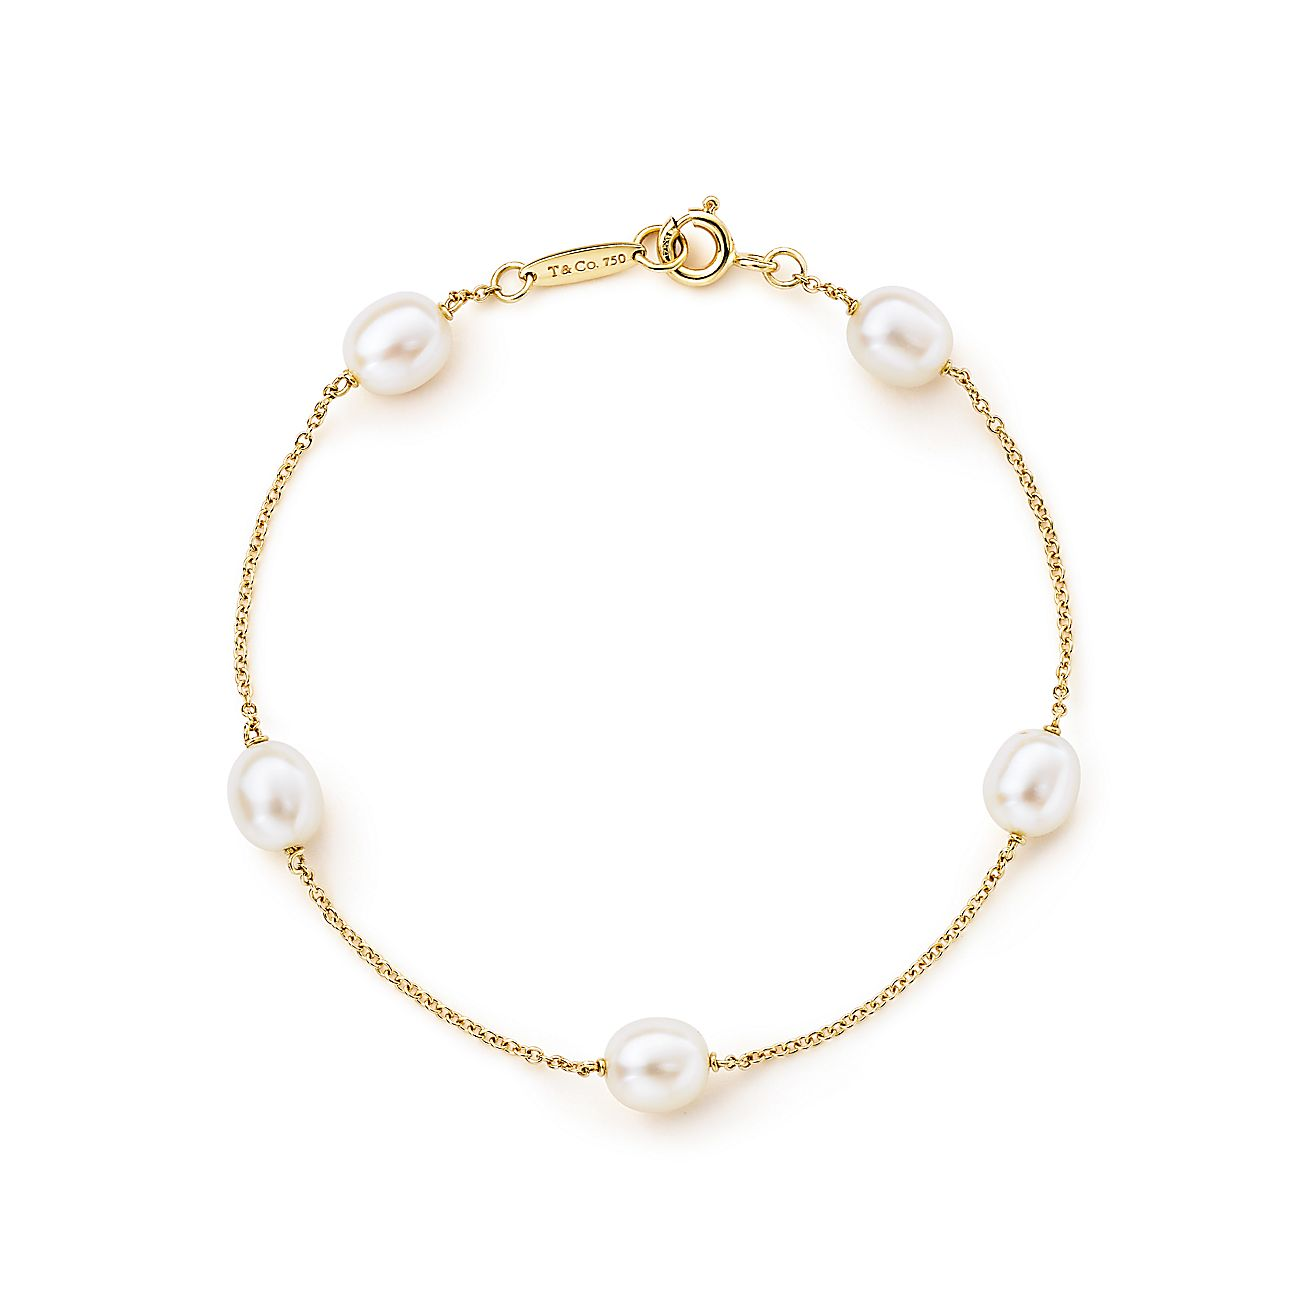 Elsa peretti pearls by the yard bracelet in 18k gold for New mom jewelry tiffany